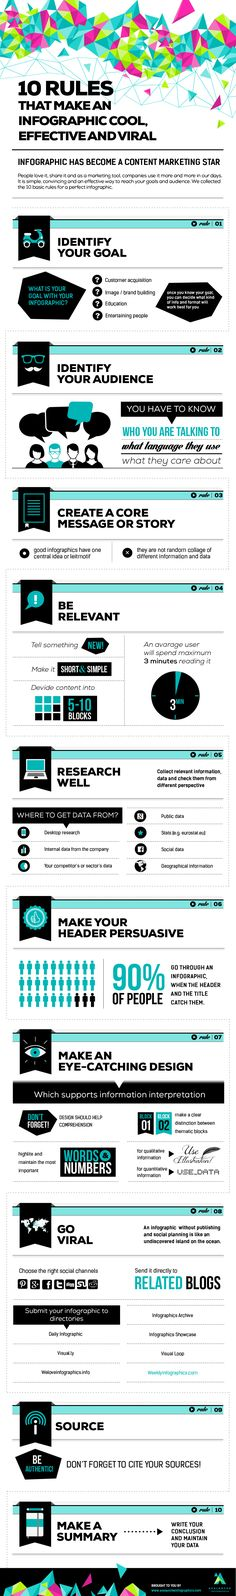 10 Rules That Make An Infographic Cool, Effective and Viral [INFOGRAPHIC]